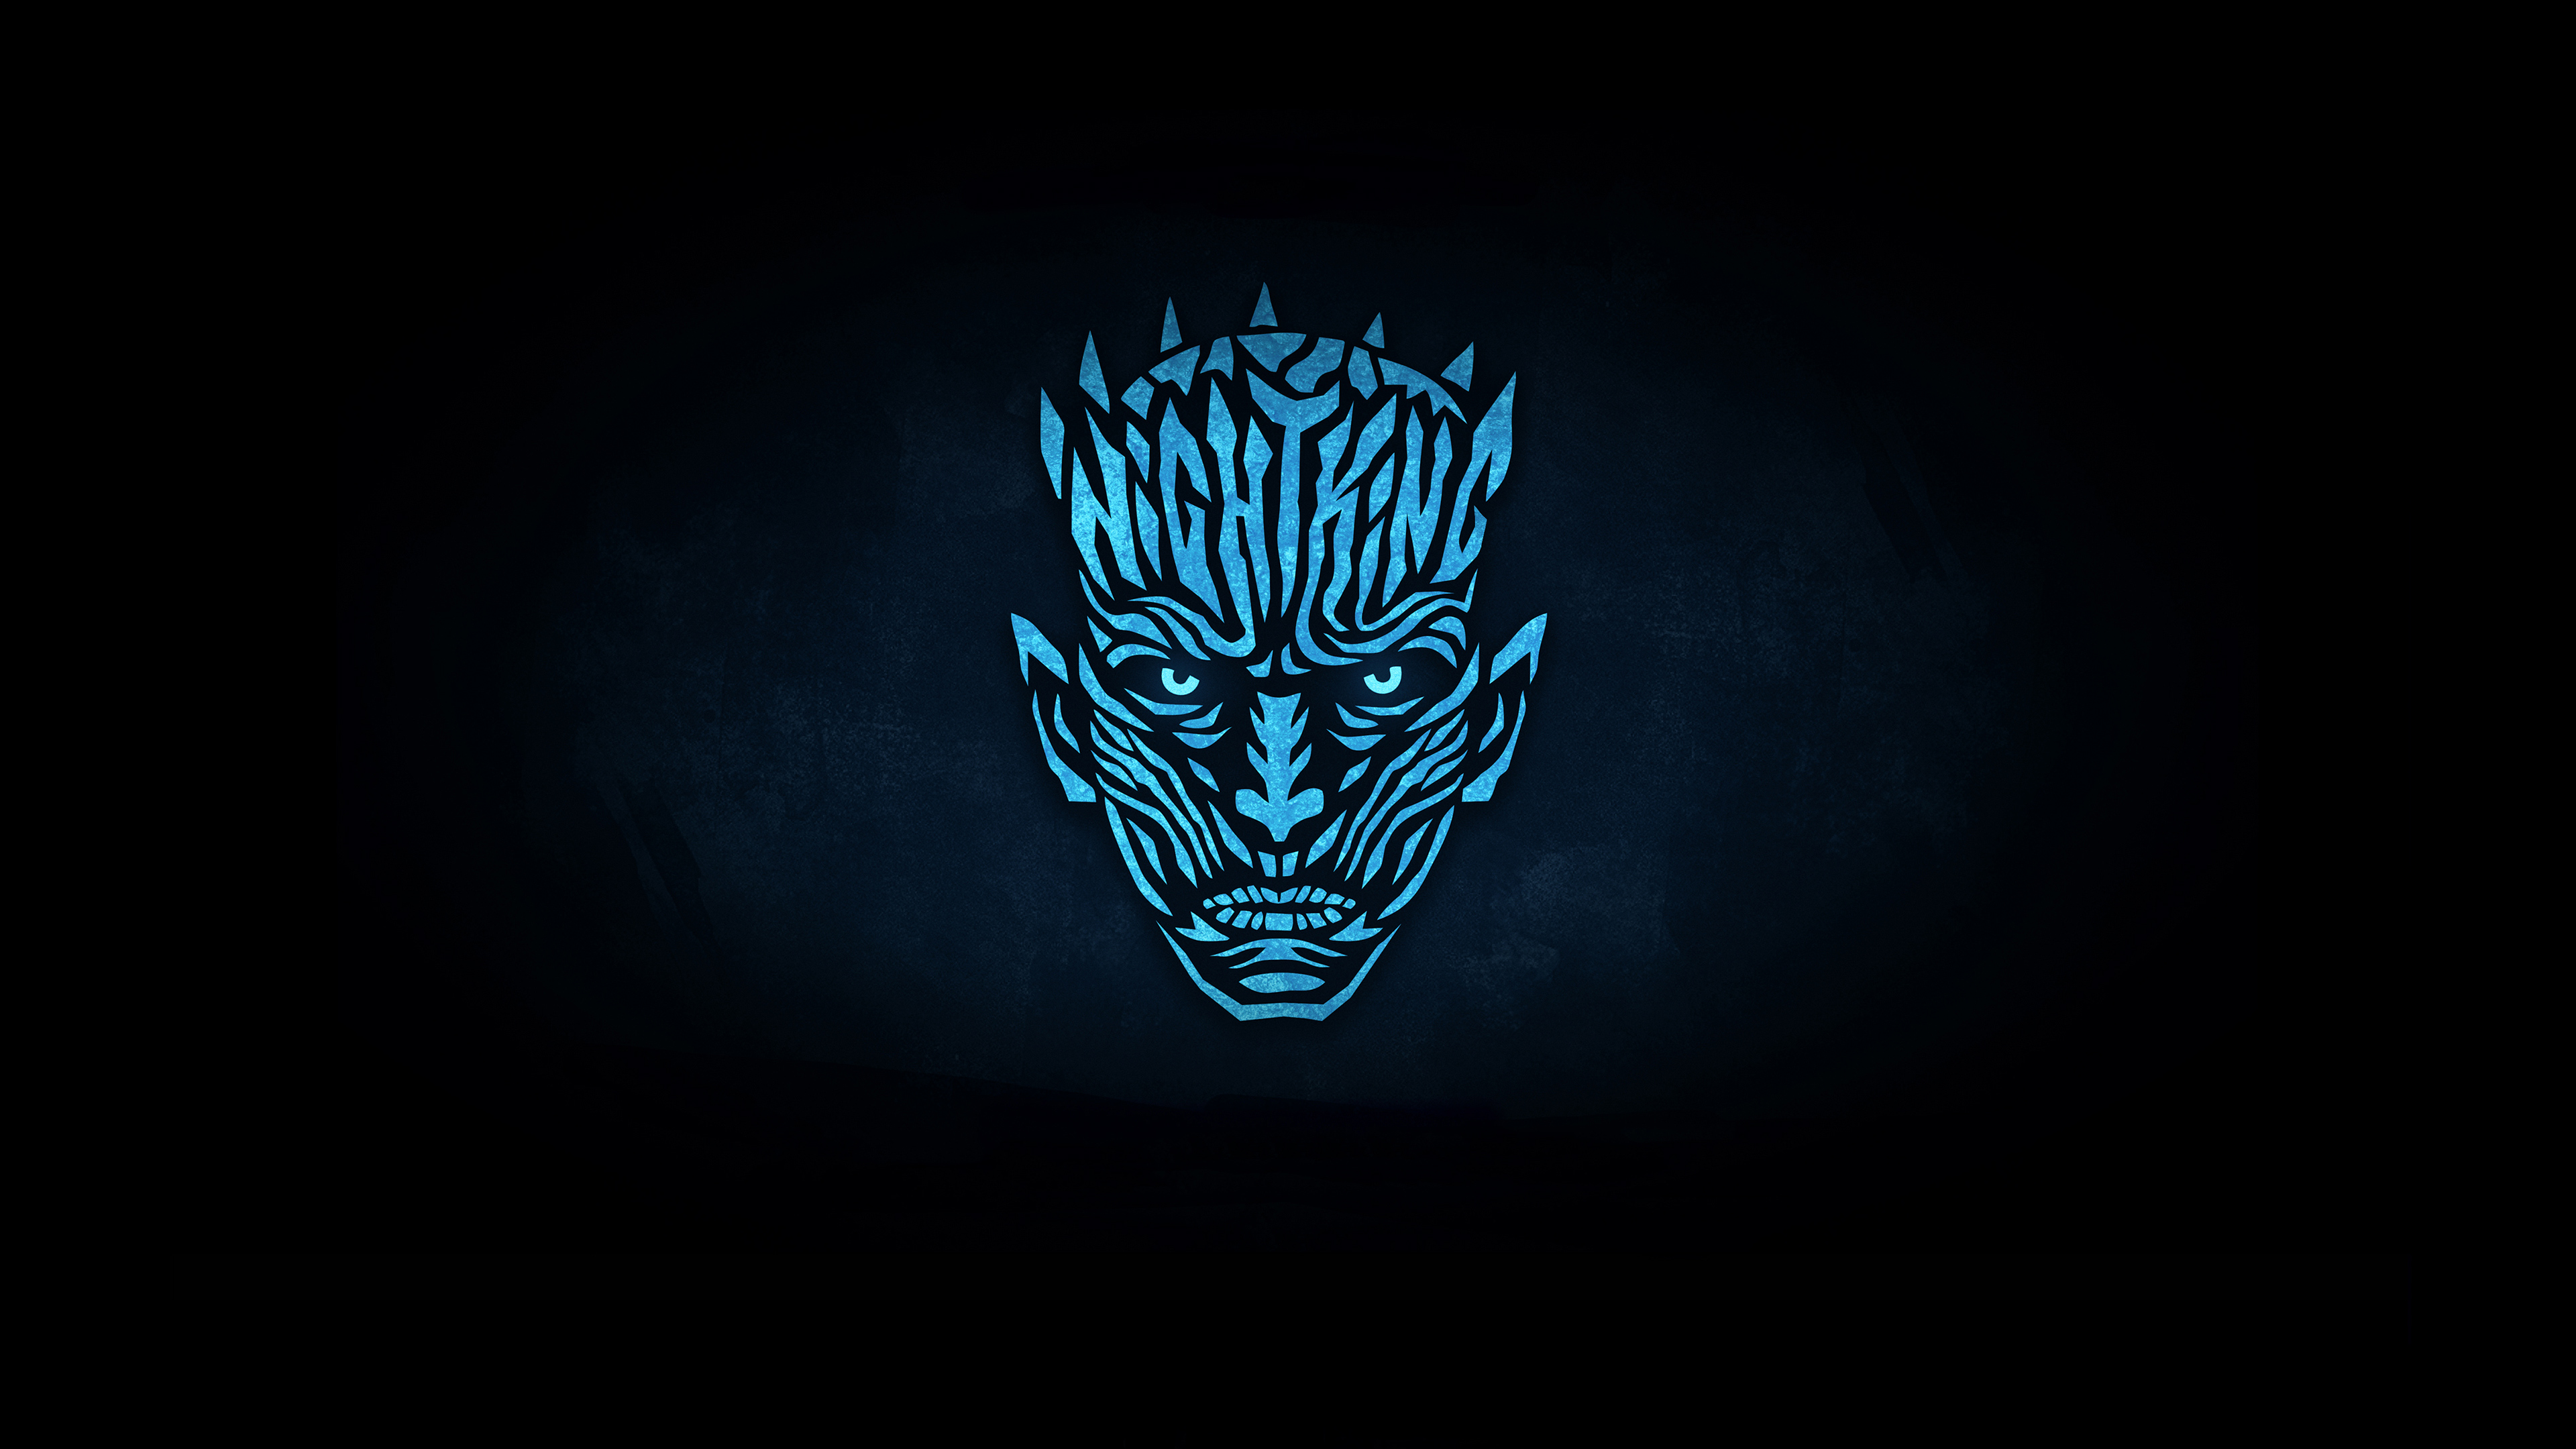 Night King Minimalist Logo 4k Hd Tv Shows 4k Wallpapers Images Backgrounds Photos And Pictures